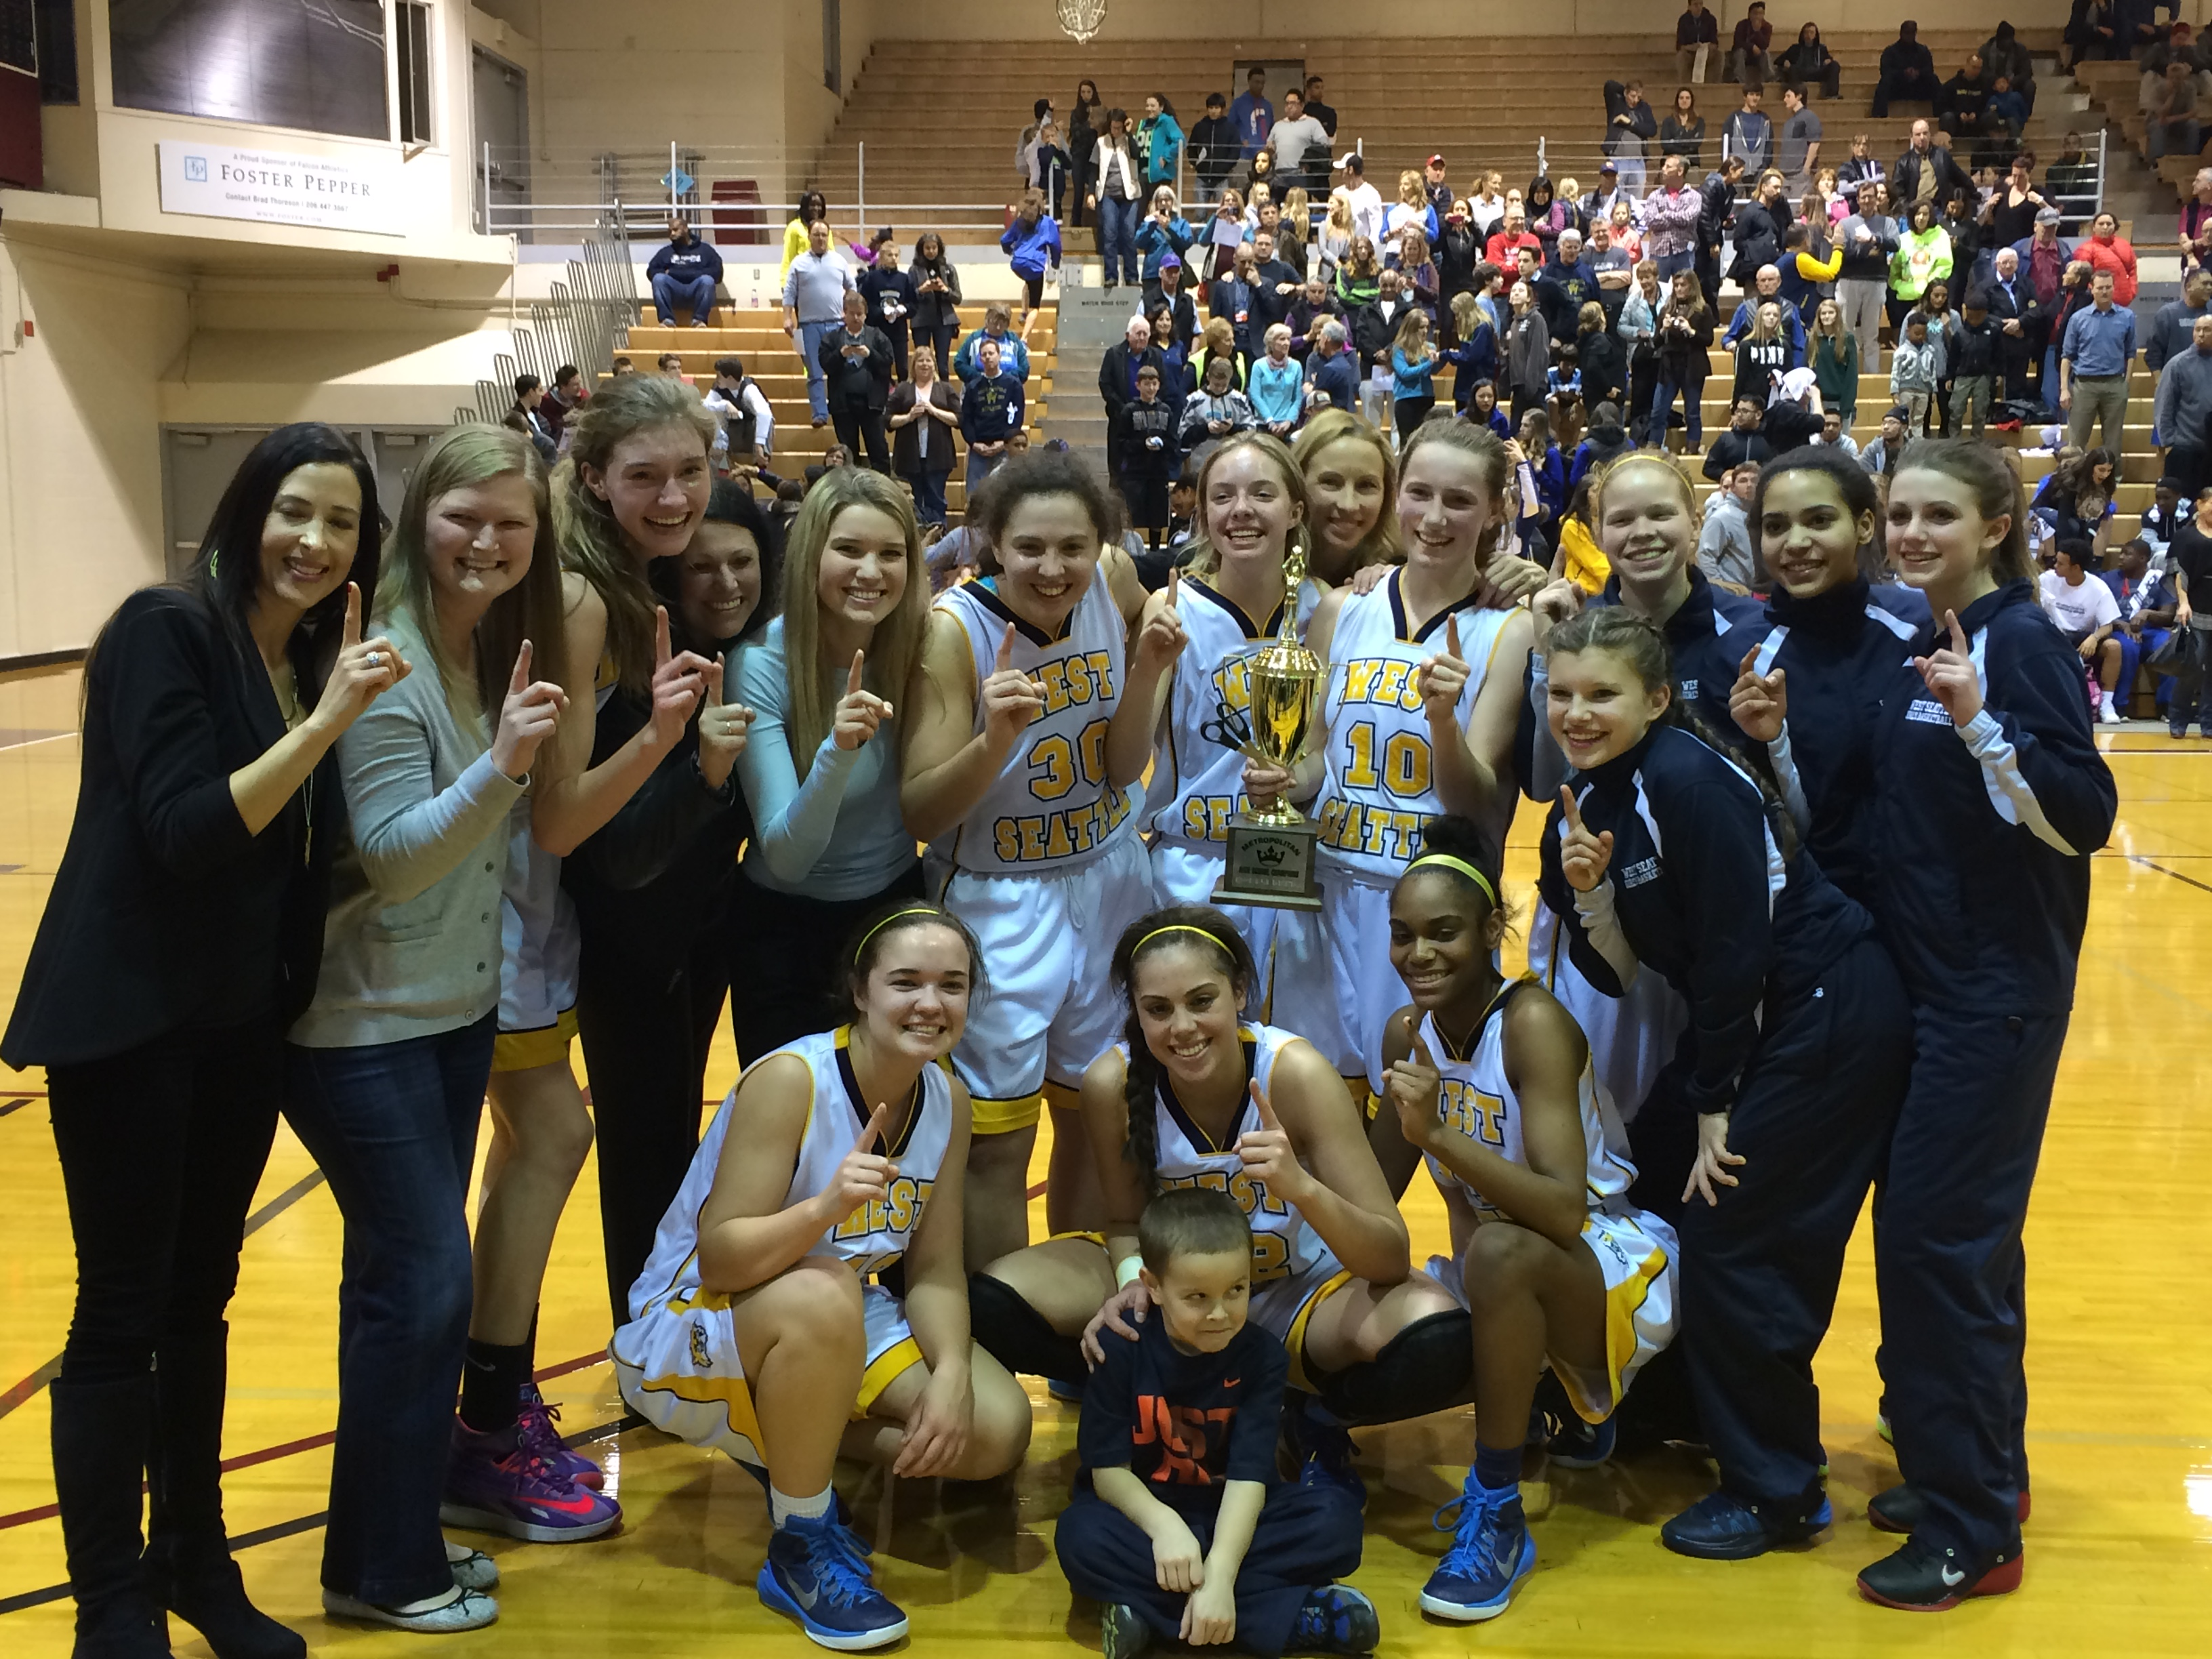 The West Seattle girls basketball team poses with its championship trophy.